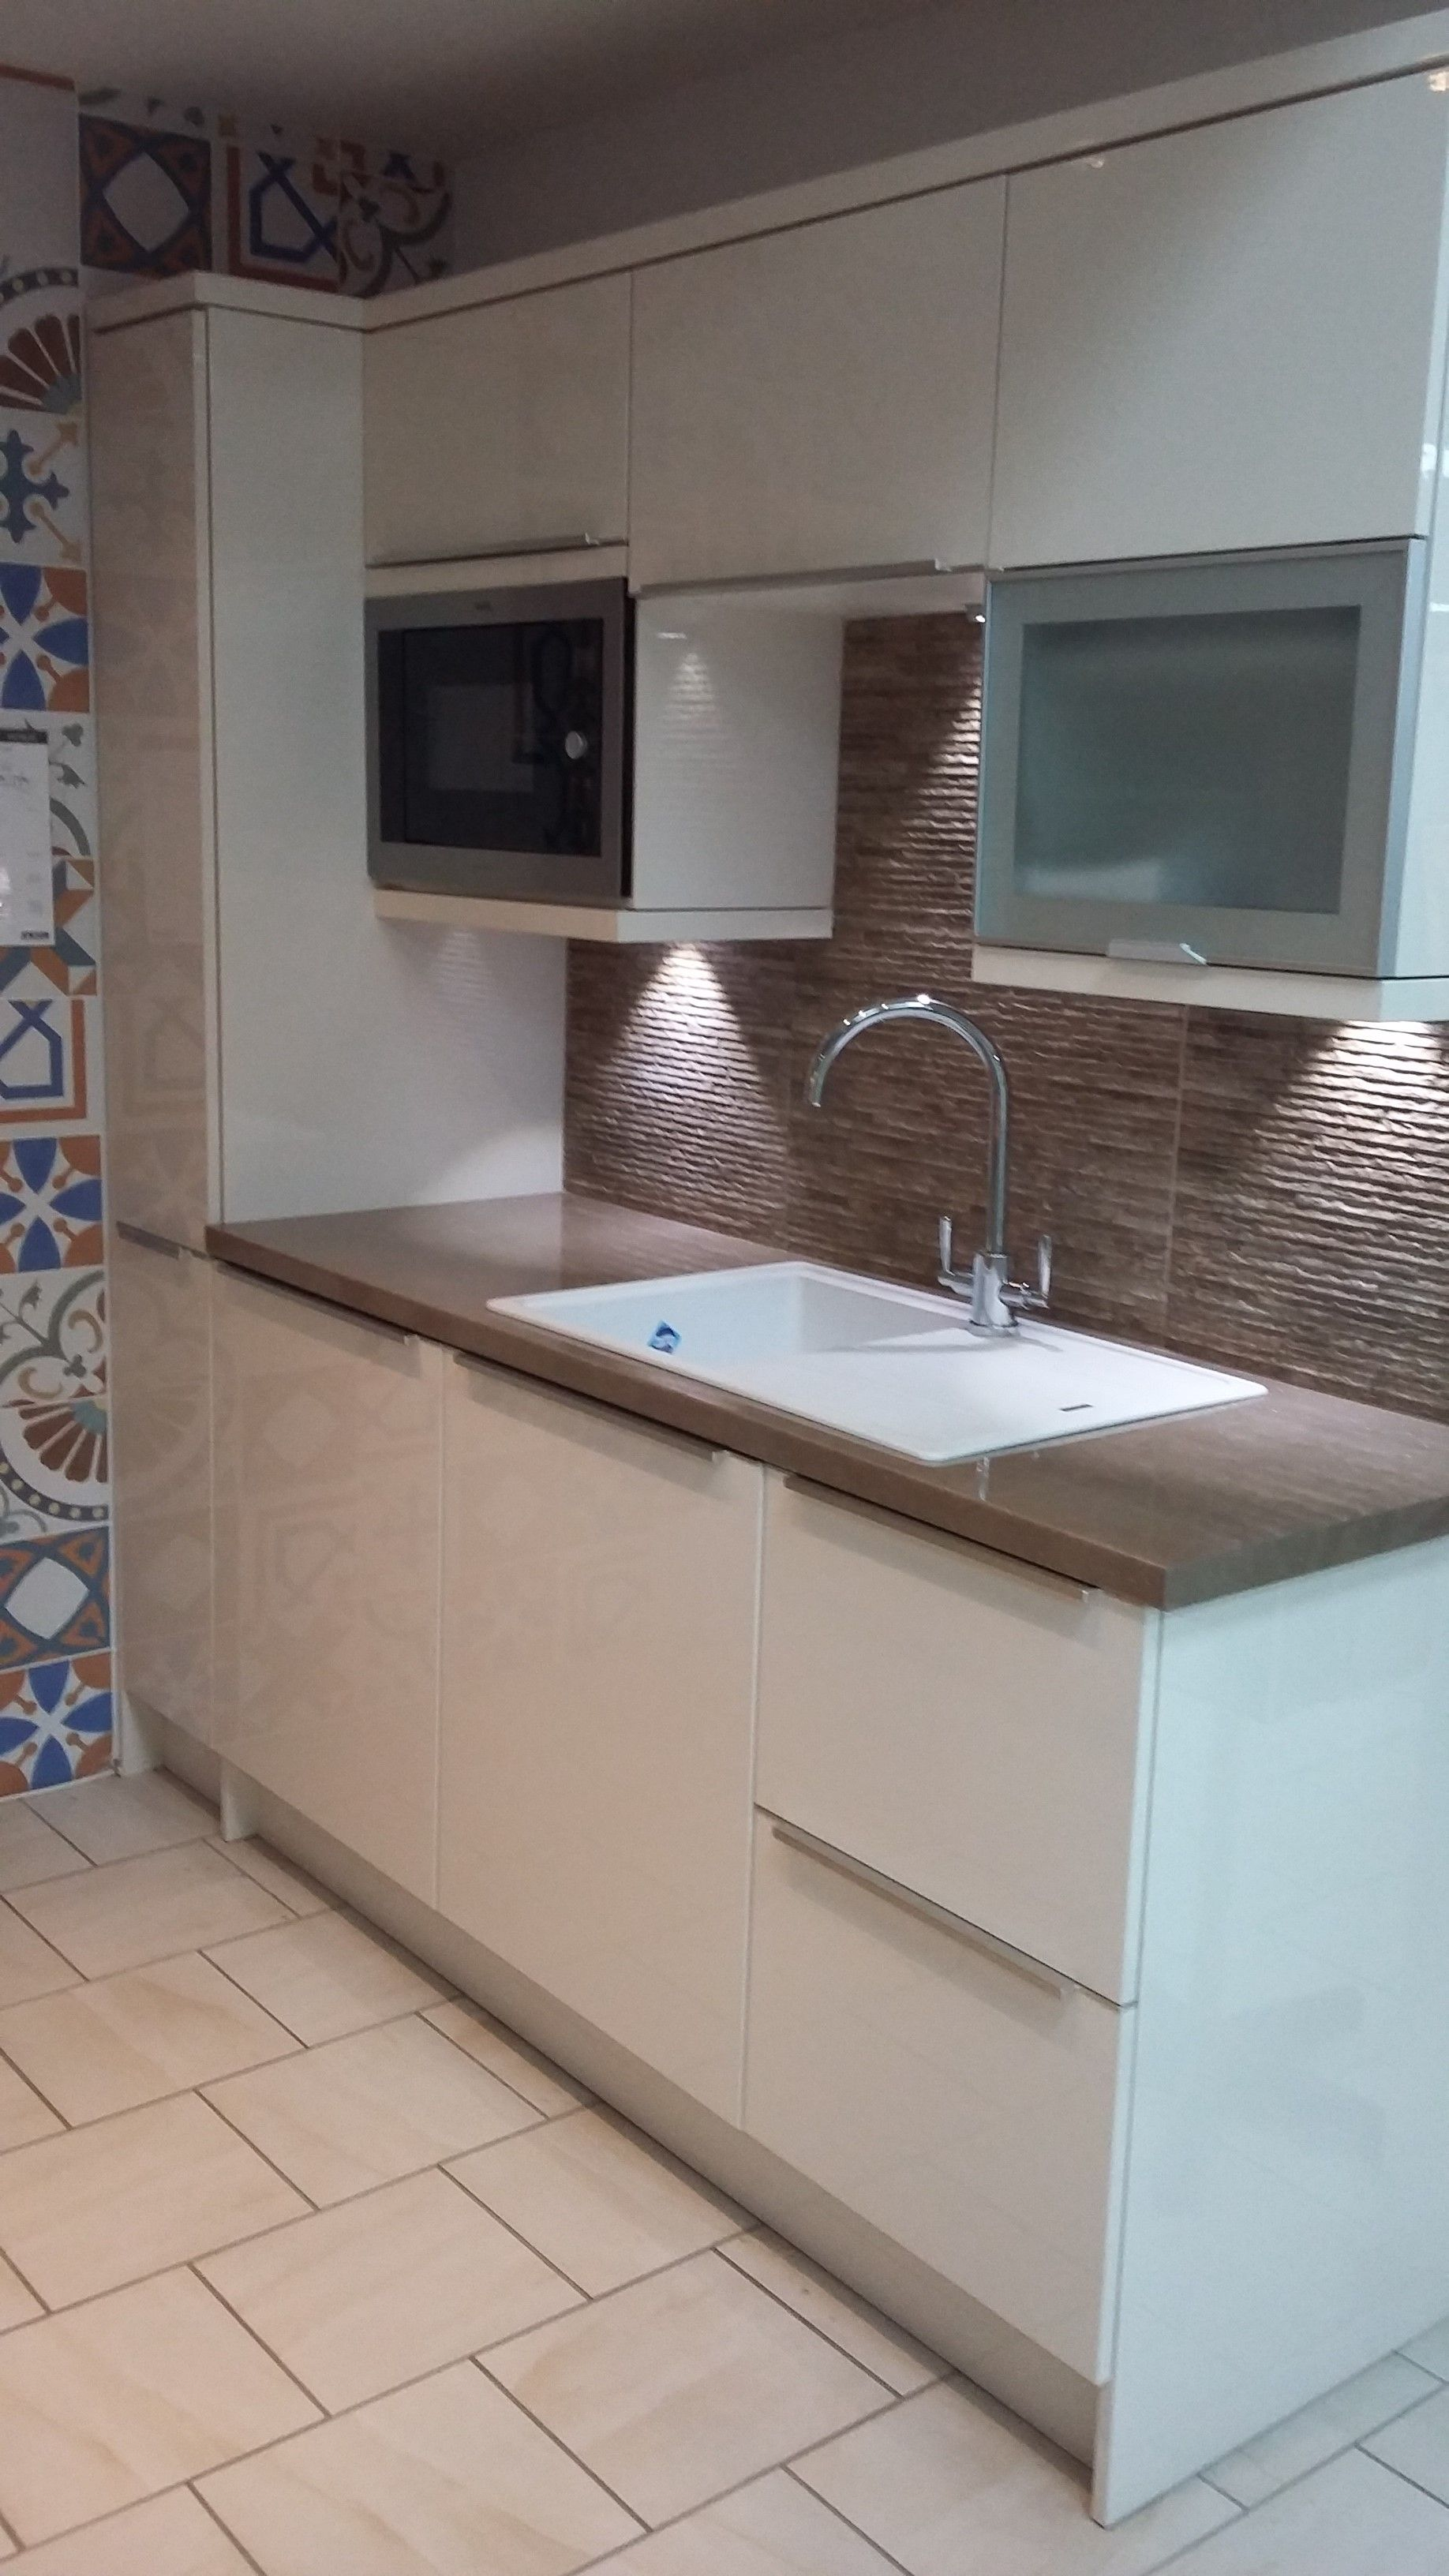 BY DESIGN Metra Gloss Ivory Kitchen with Omega Sandstone Quartz